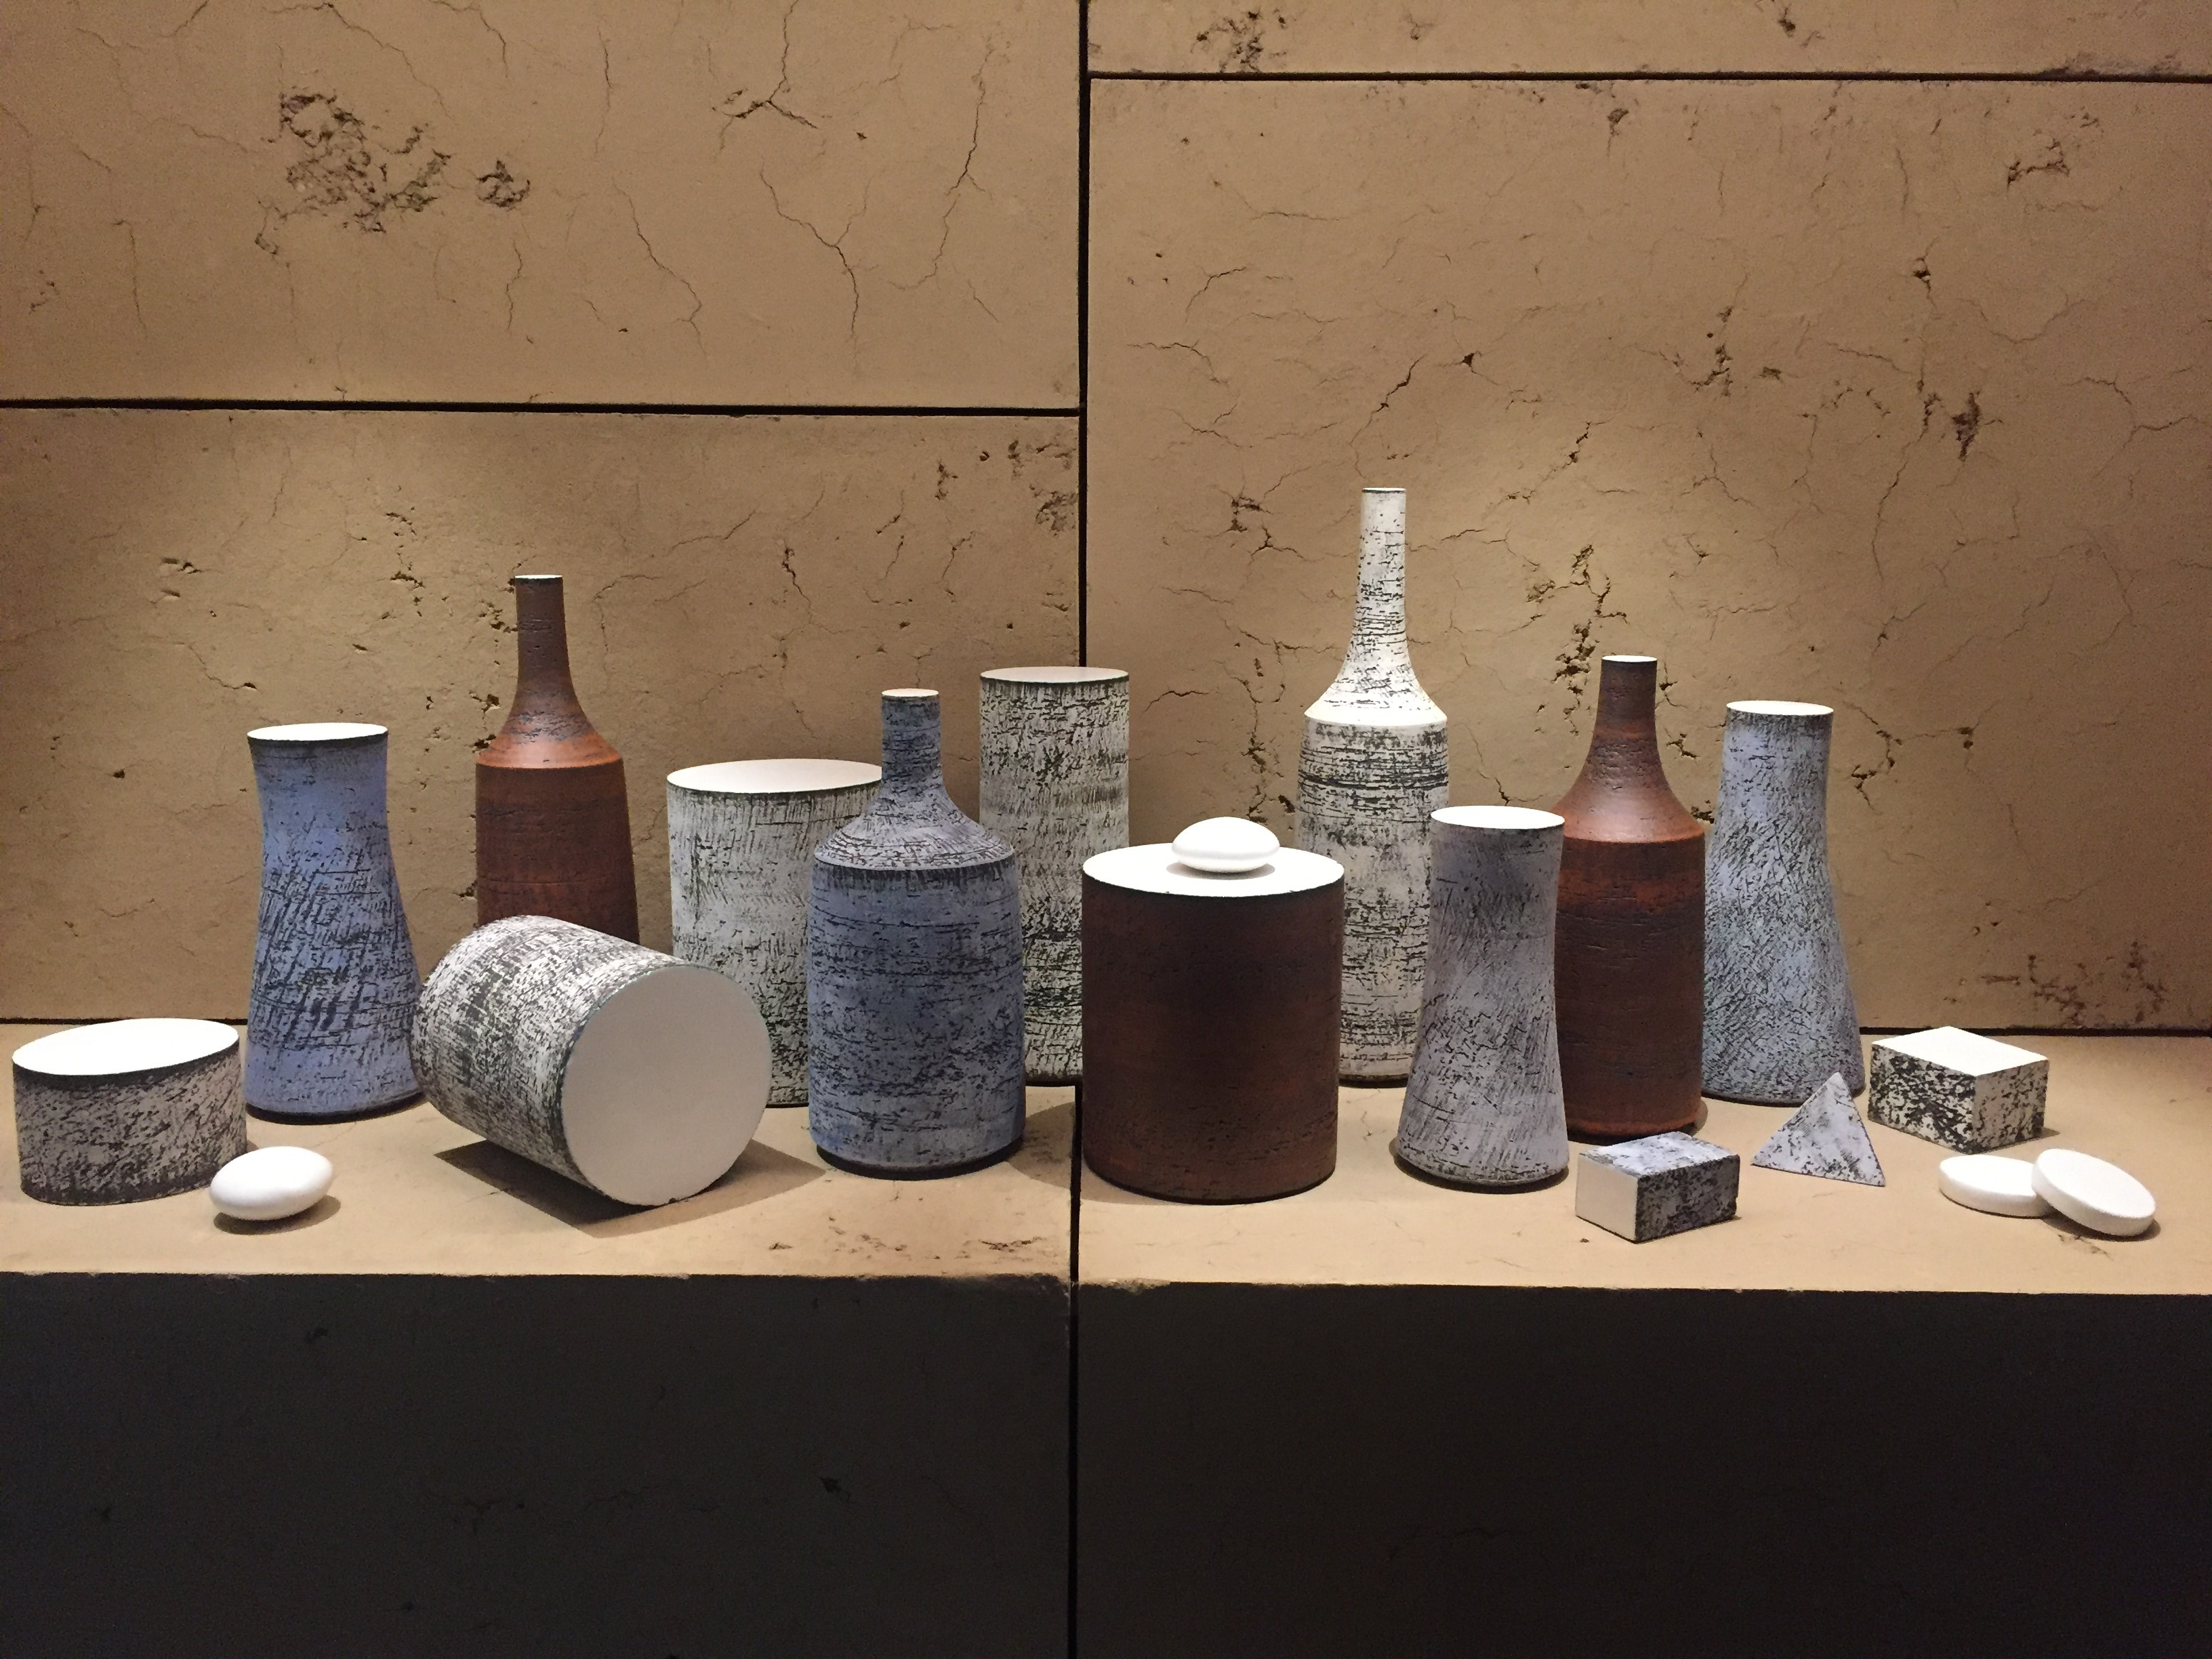 Nature Morte (glazed clay) by Kristin Mekirdy at Foundation Bettencourt Schueller's Pour l'intelligence de la Main